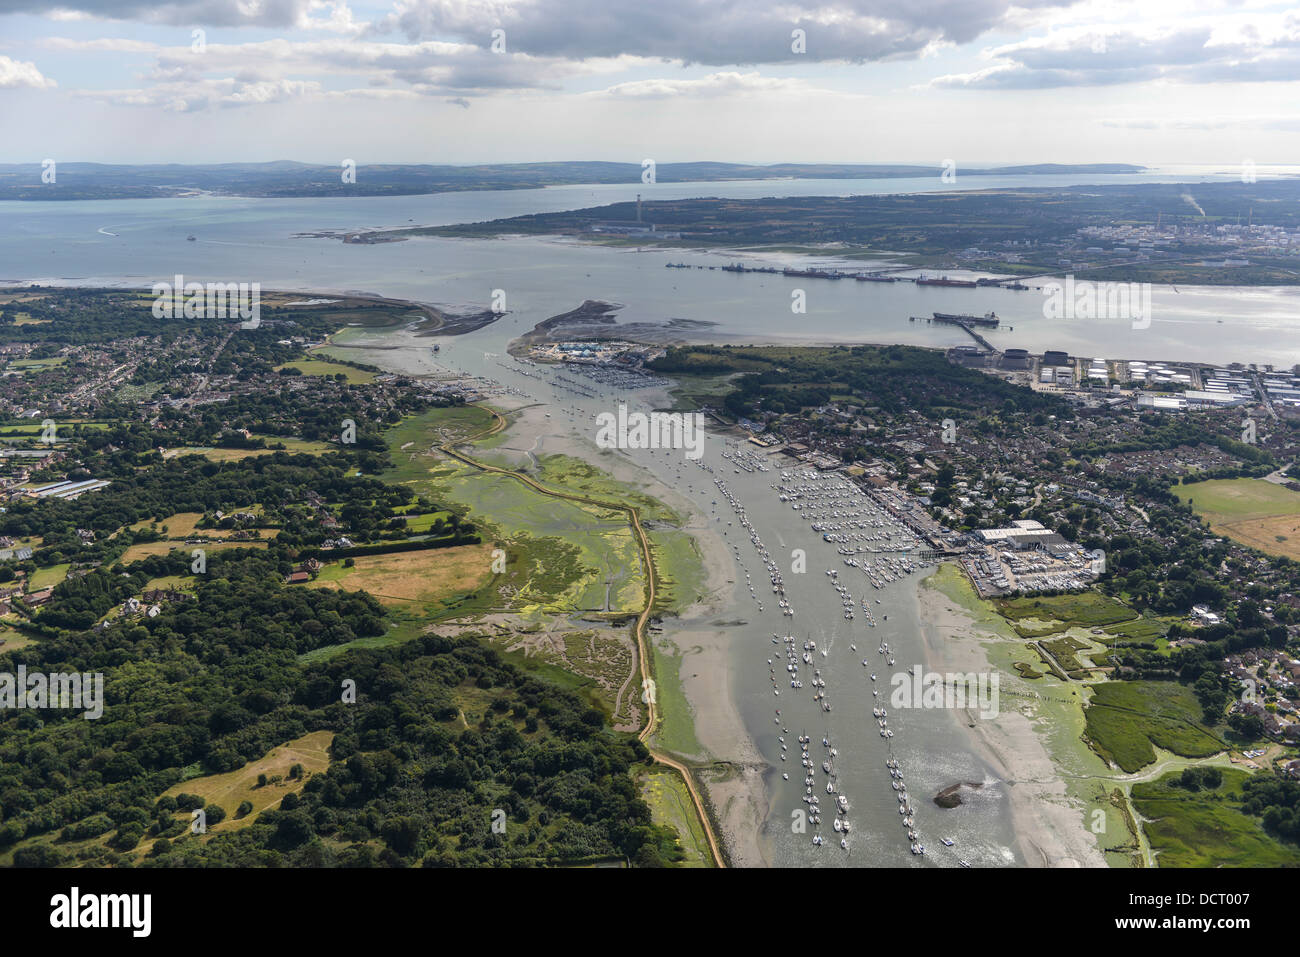 Aerial photograph of River Hamble looking South into Southampton Water - Stock Image